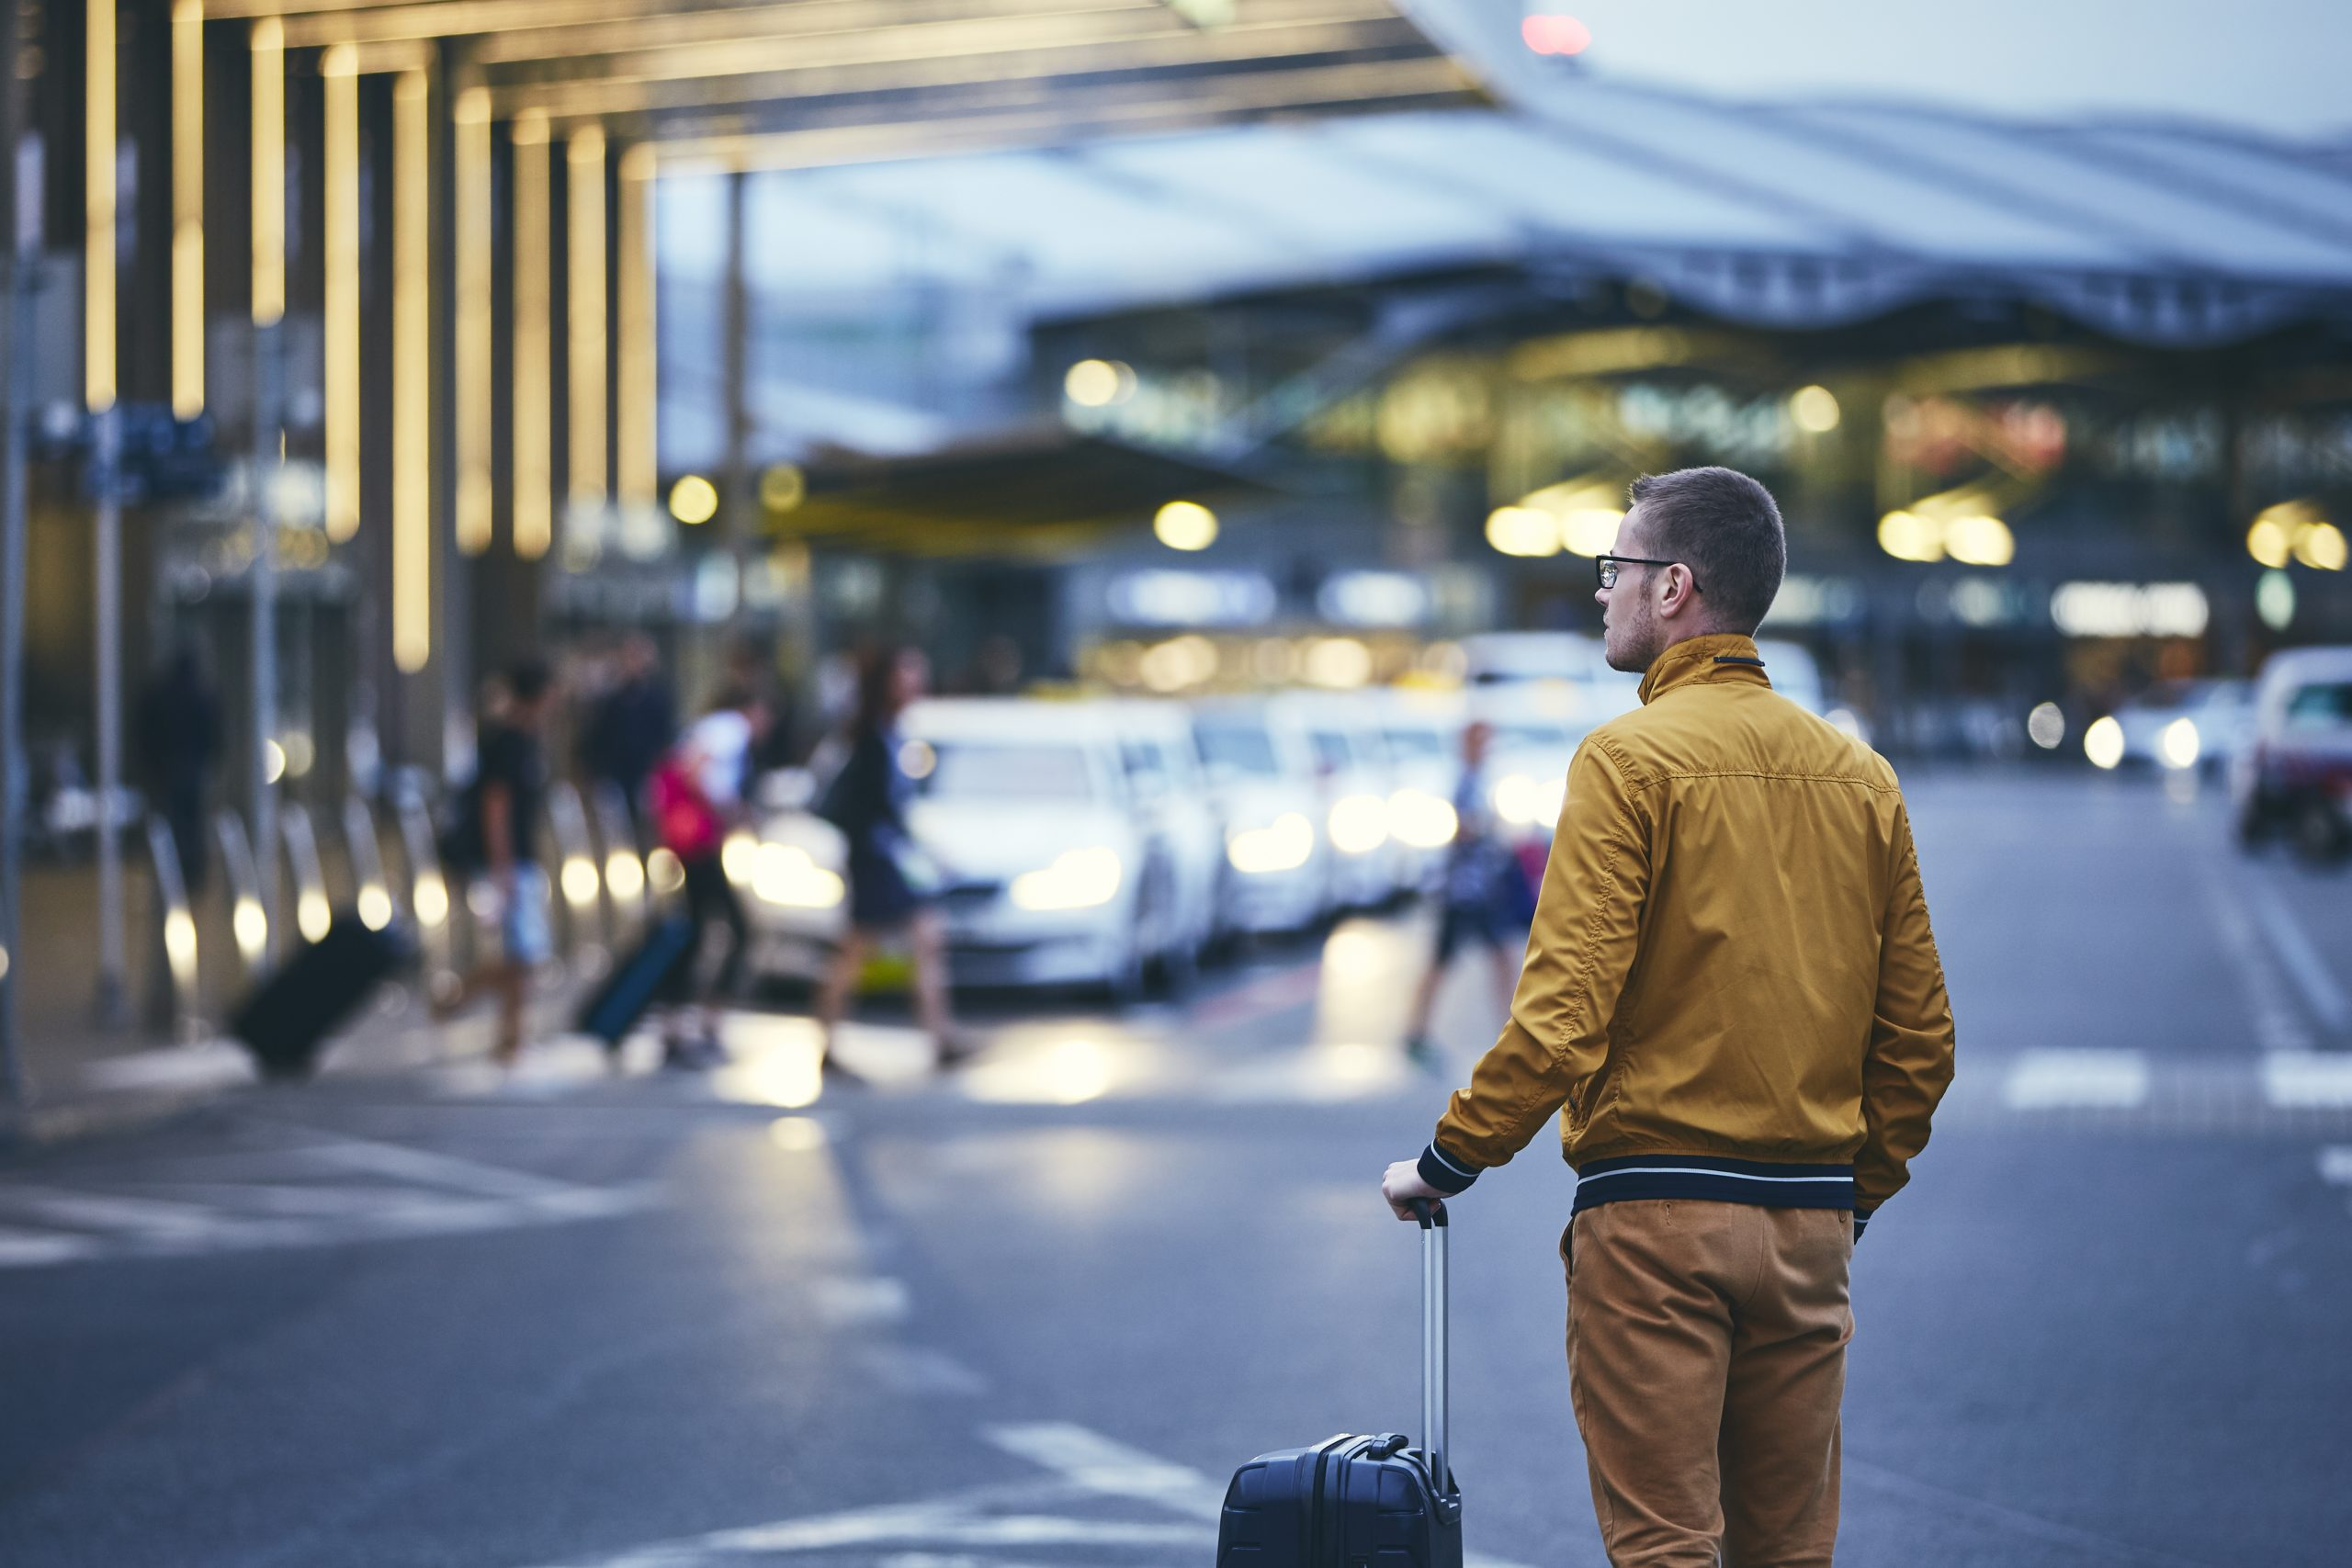 Passenger walking outside airport terminal. Rear view of young man with luggage at night.